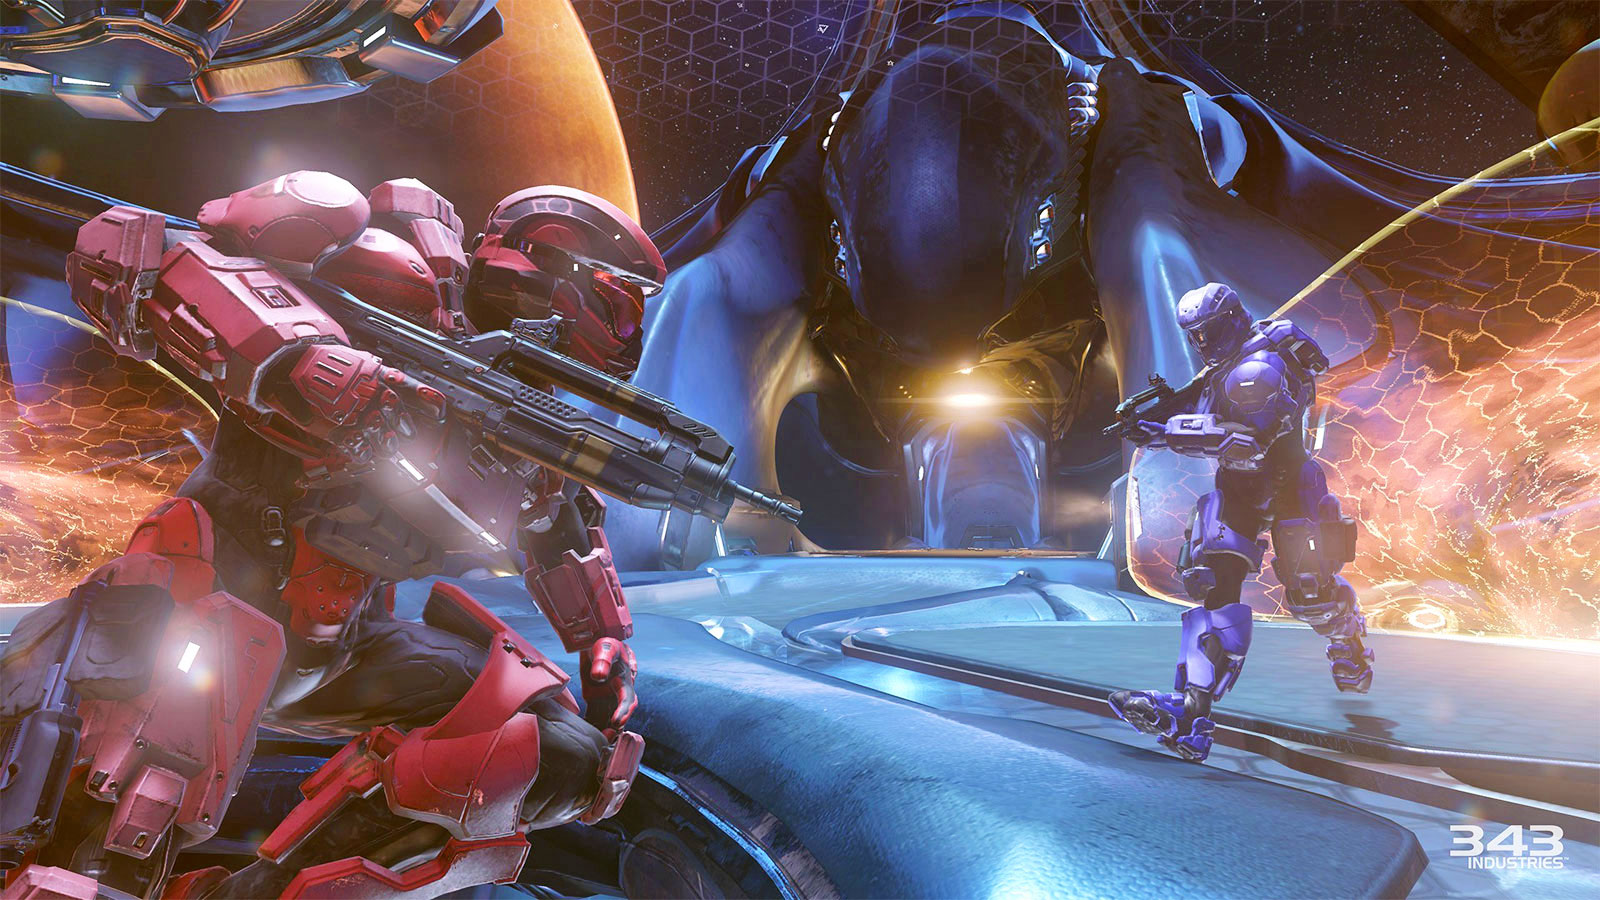 Halo 5: Forge' reaches PCs on September 8th